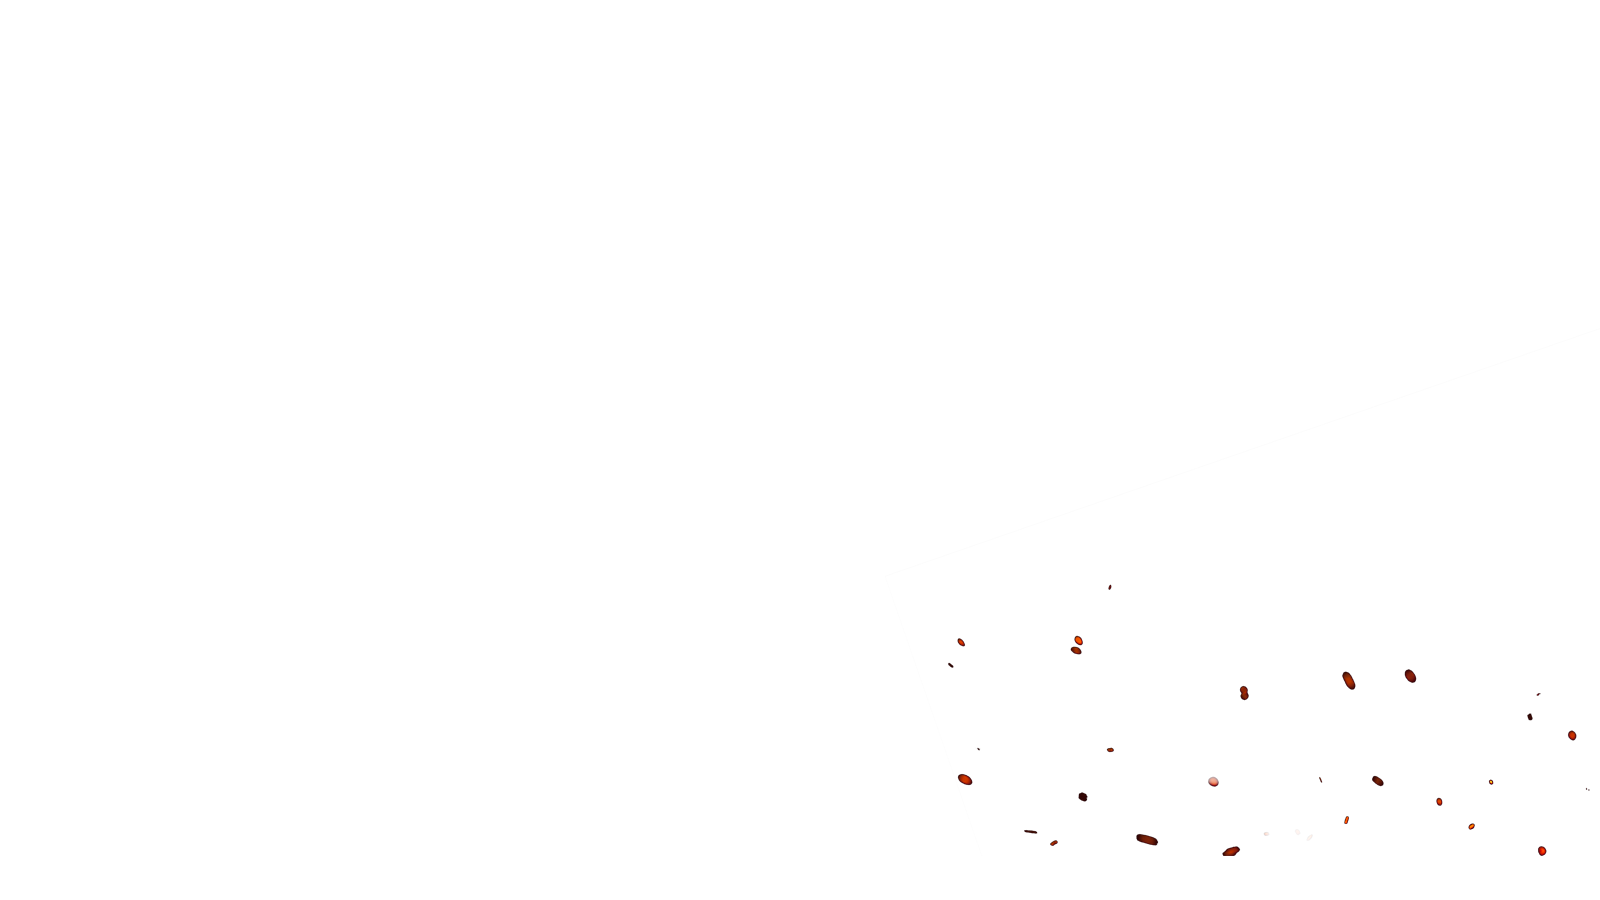 Embers png transparent. Fire